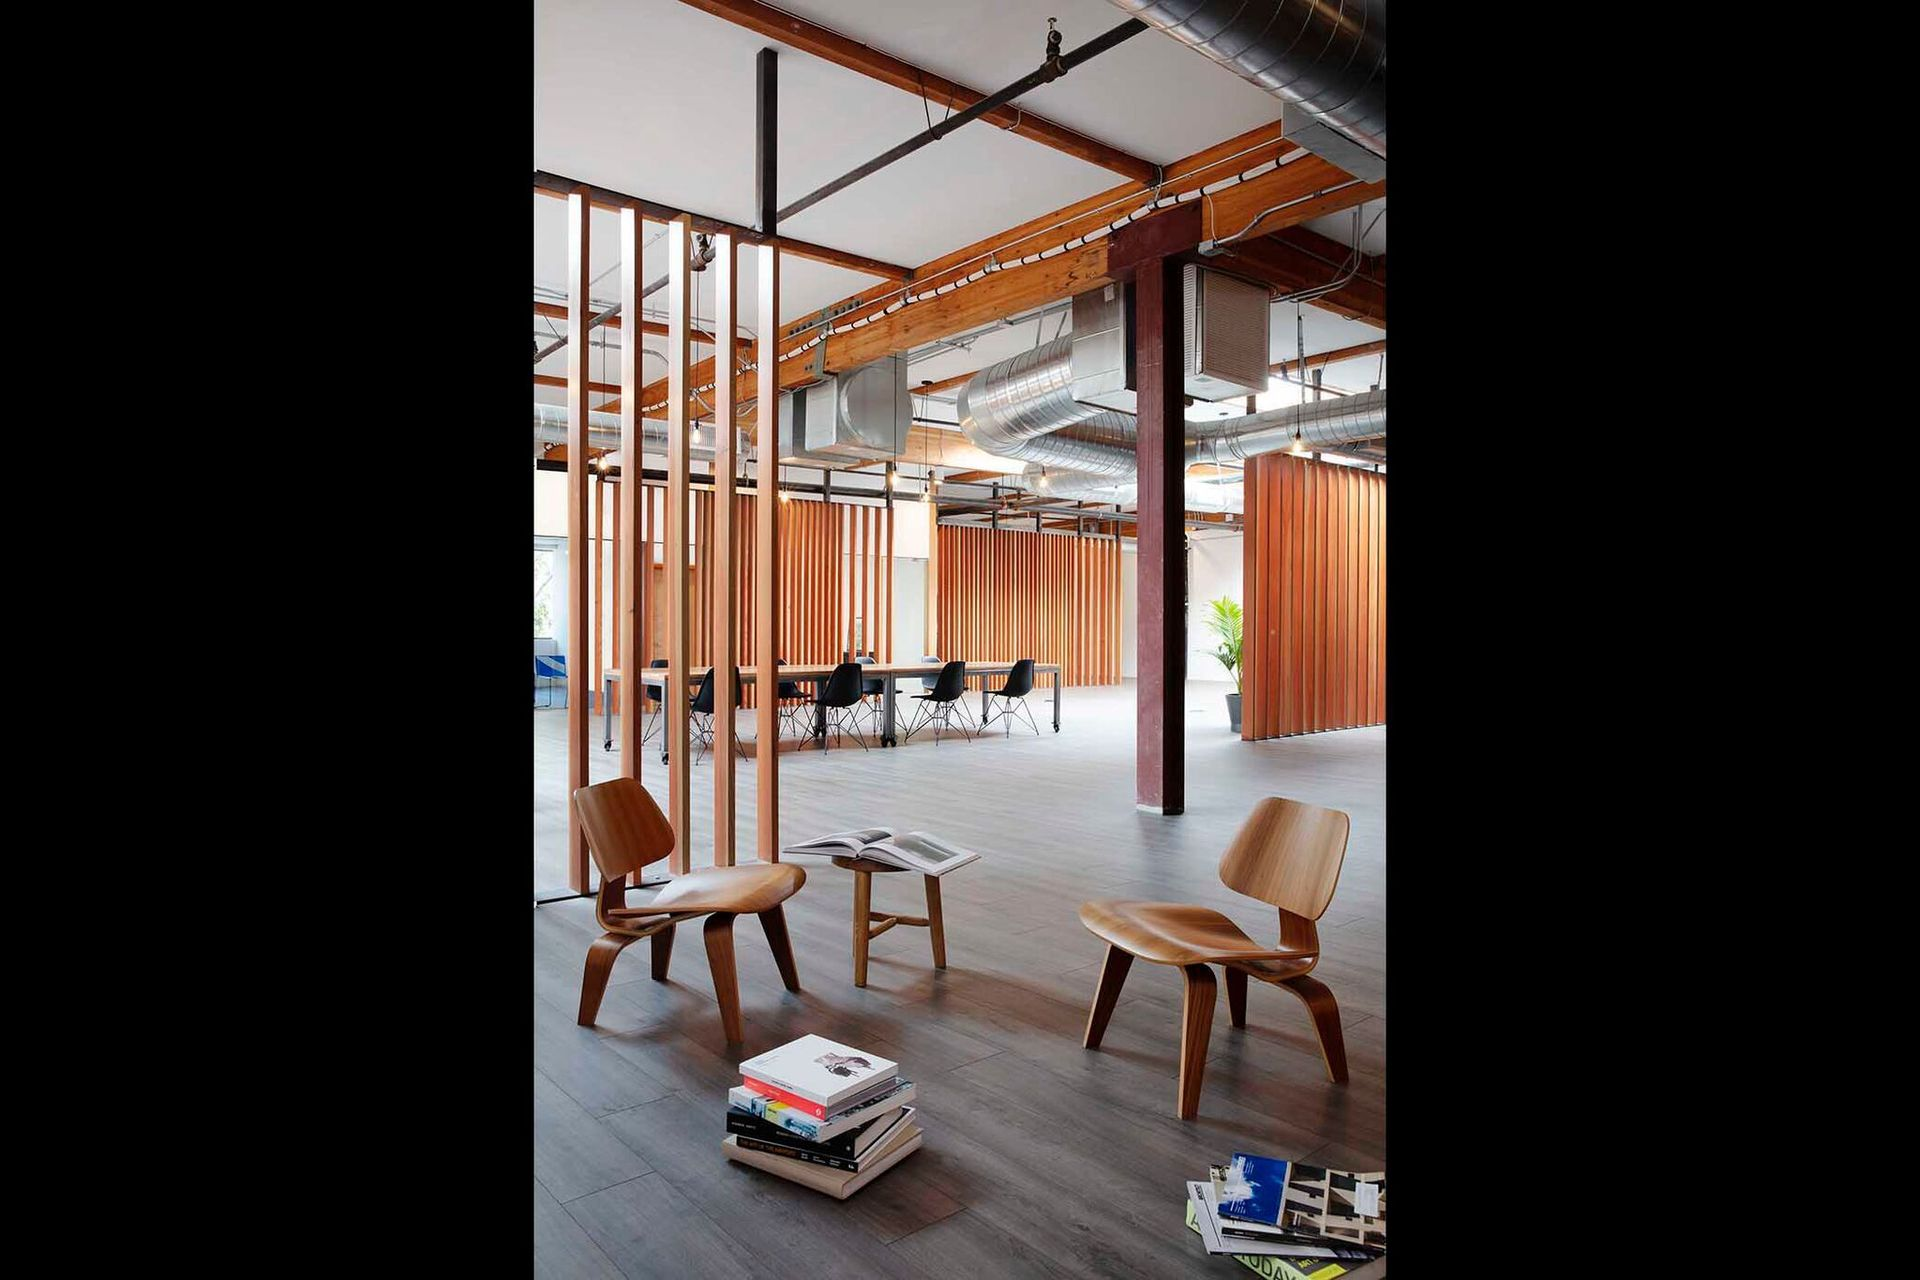 Wood slatted screens are carefully choreographed throughout to delineate space while maintaining an expansive feel. The rhythm and spacing of the slats are tuned to vary porosity and visibility according to program needs.